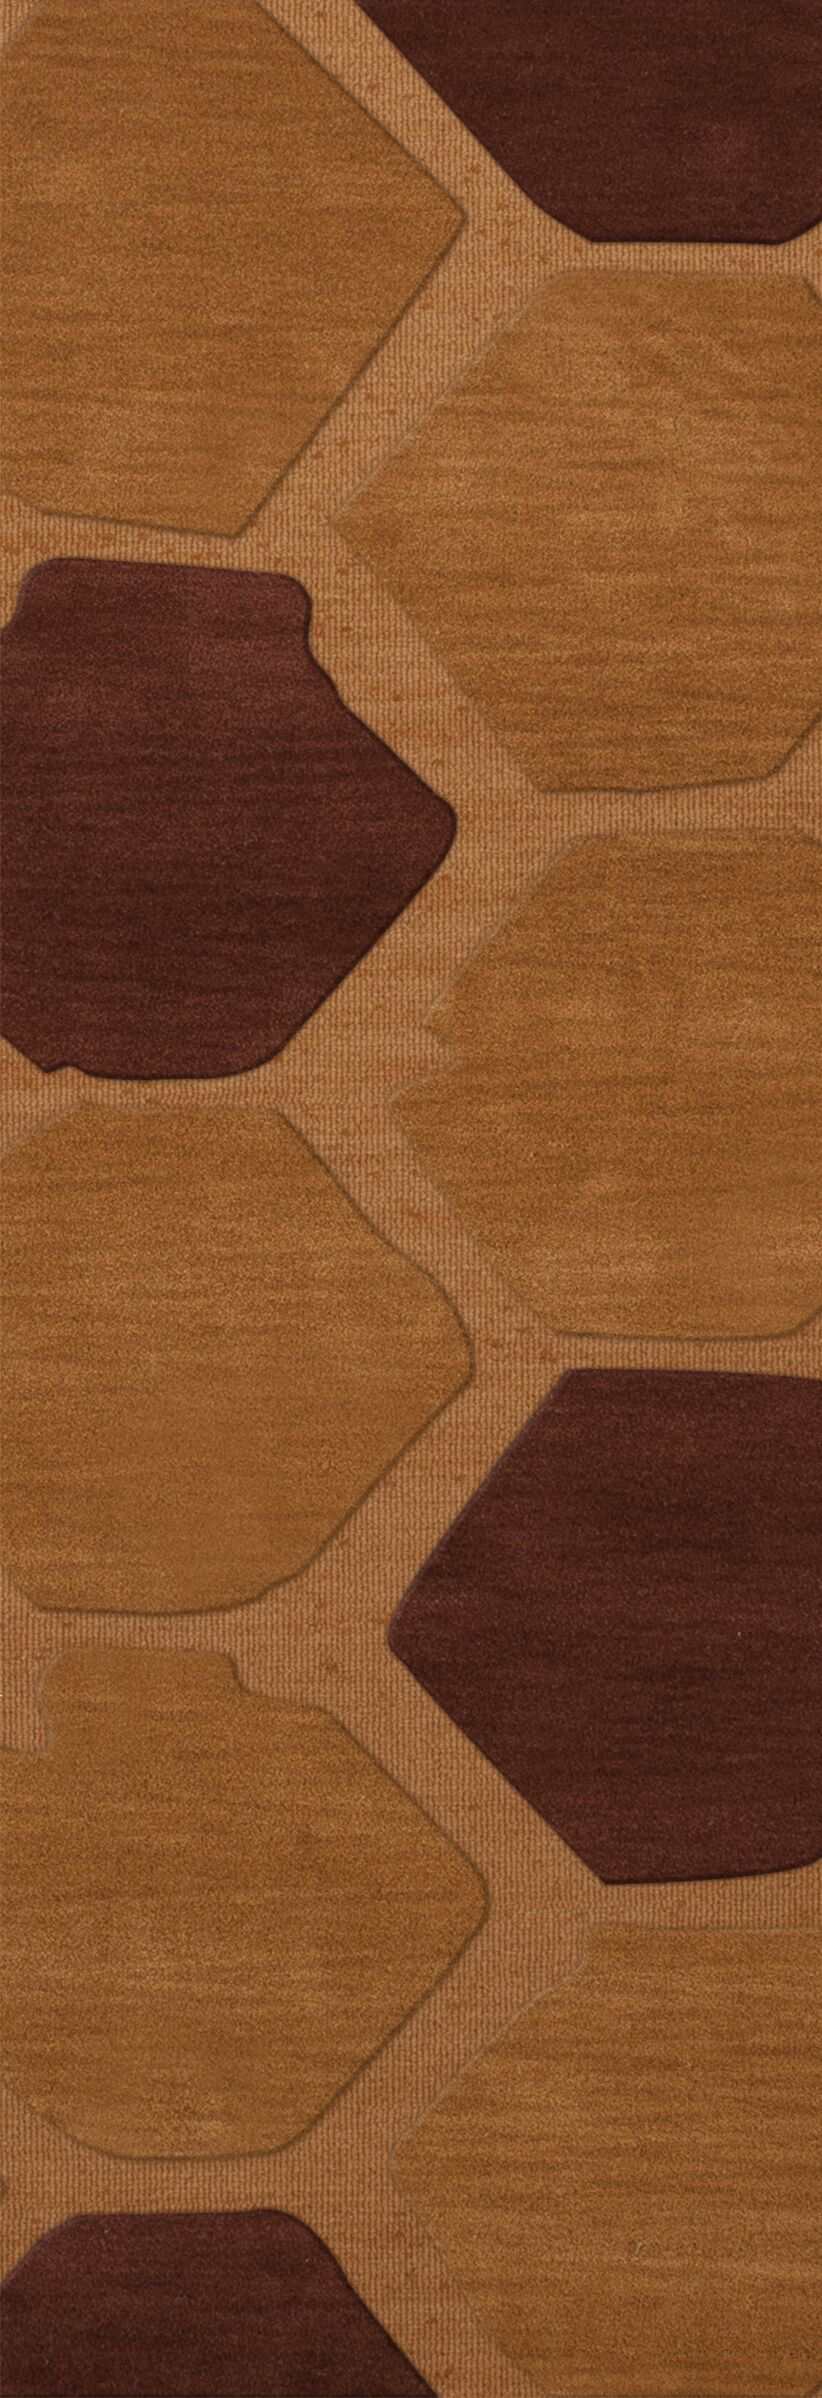 Hamswell Wool Cider Area Rug Rug Size: Runner 2'6